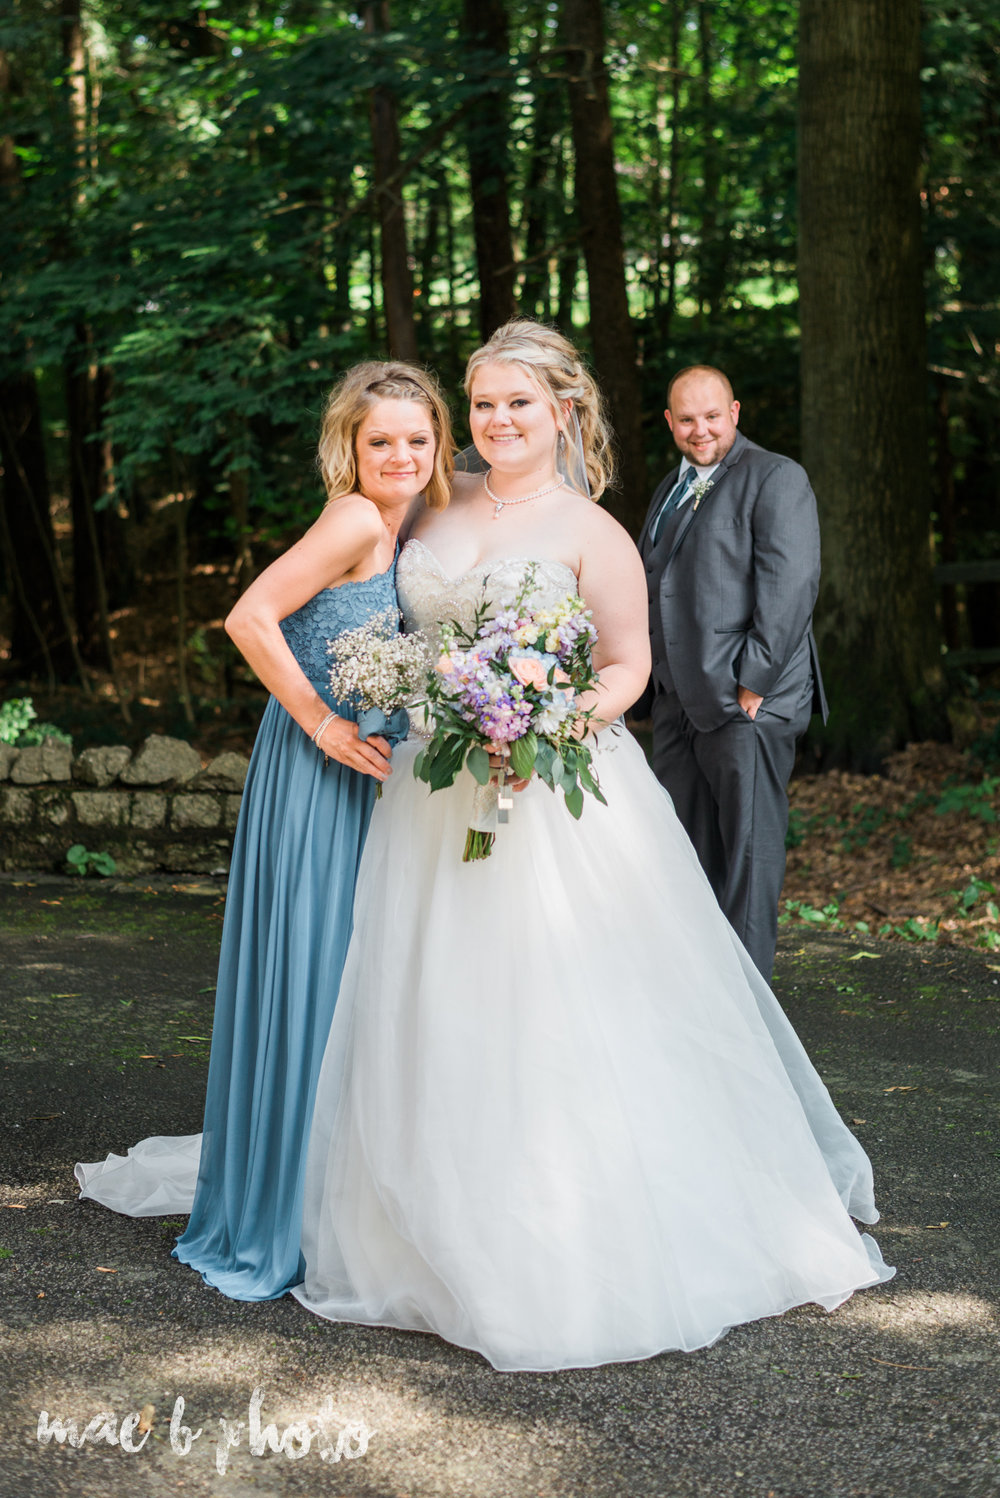 behind the scenes of jenna and jay's laid back fun italian wedding at ford nature center in mill creek park in youngstown ohio photographed by youngstown wedding photographer mae b photo-2.jpg